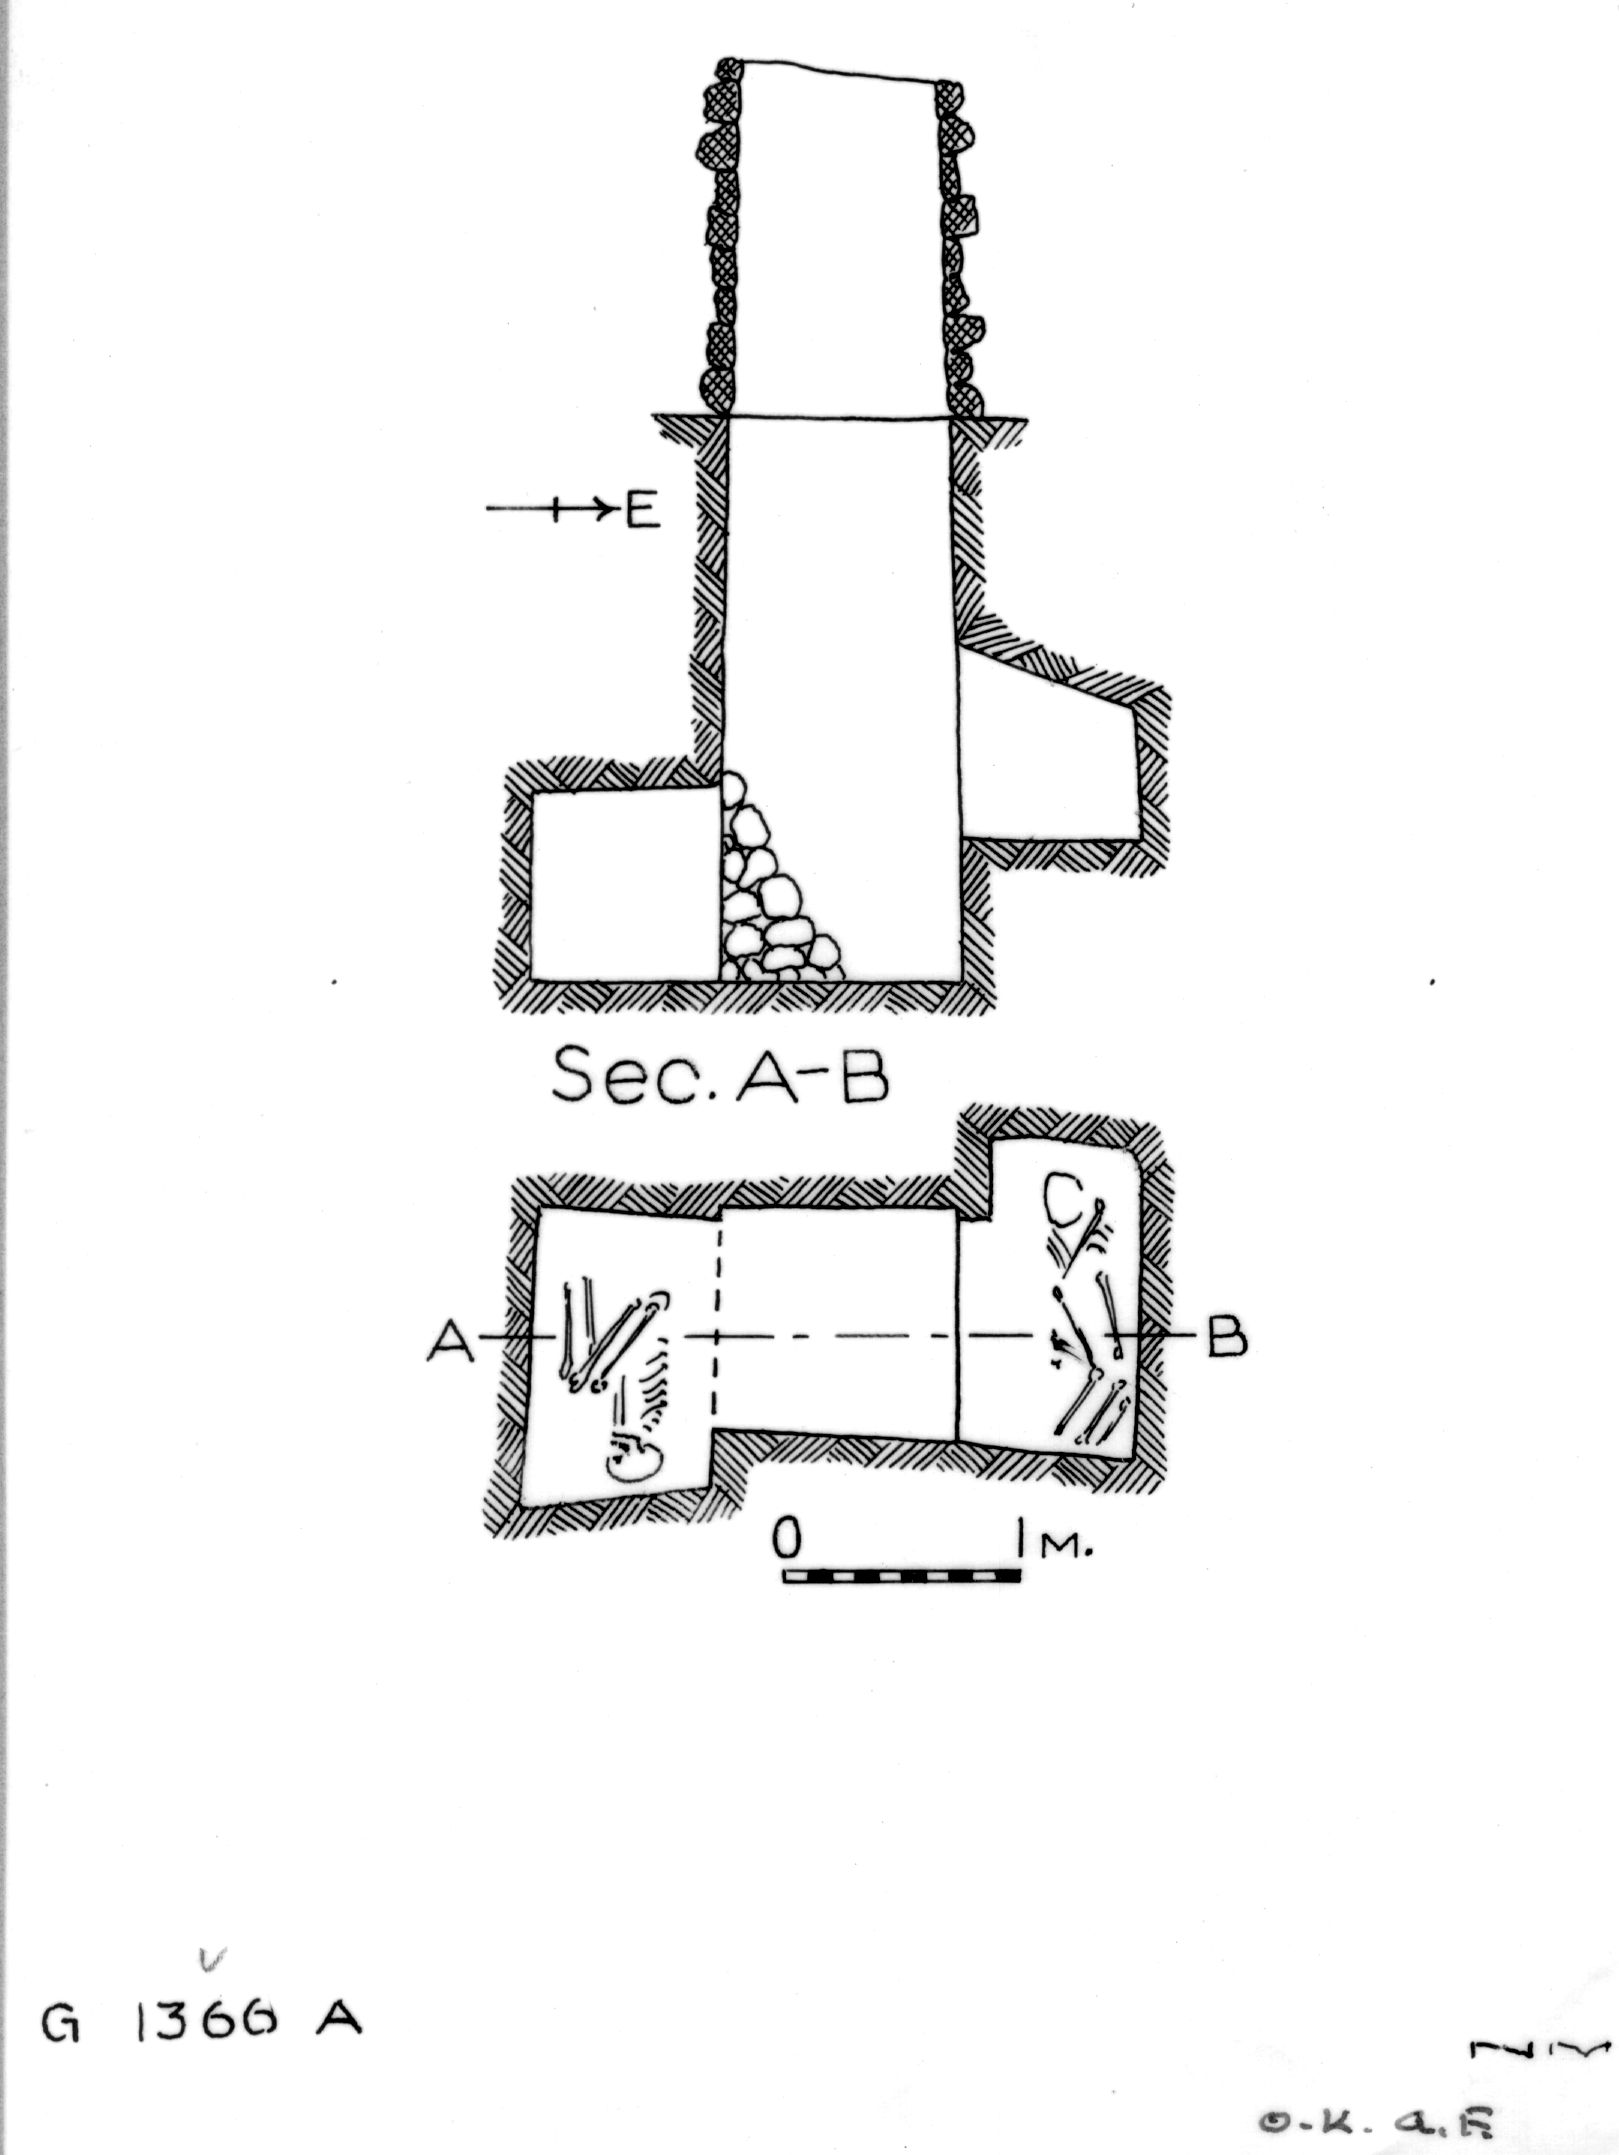 Maps and plans: G 1366, Shaft A